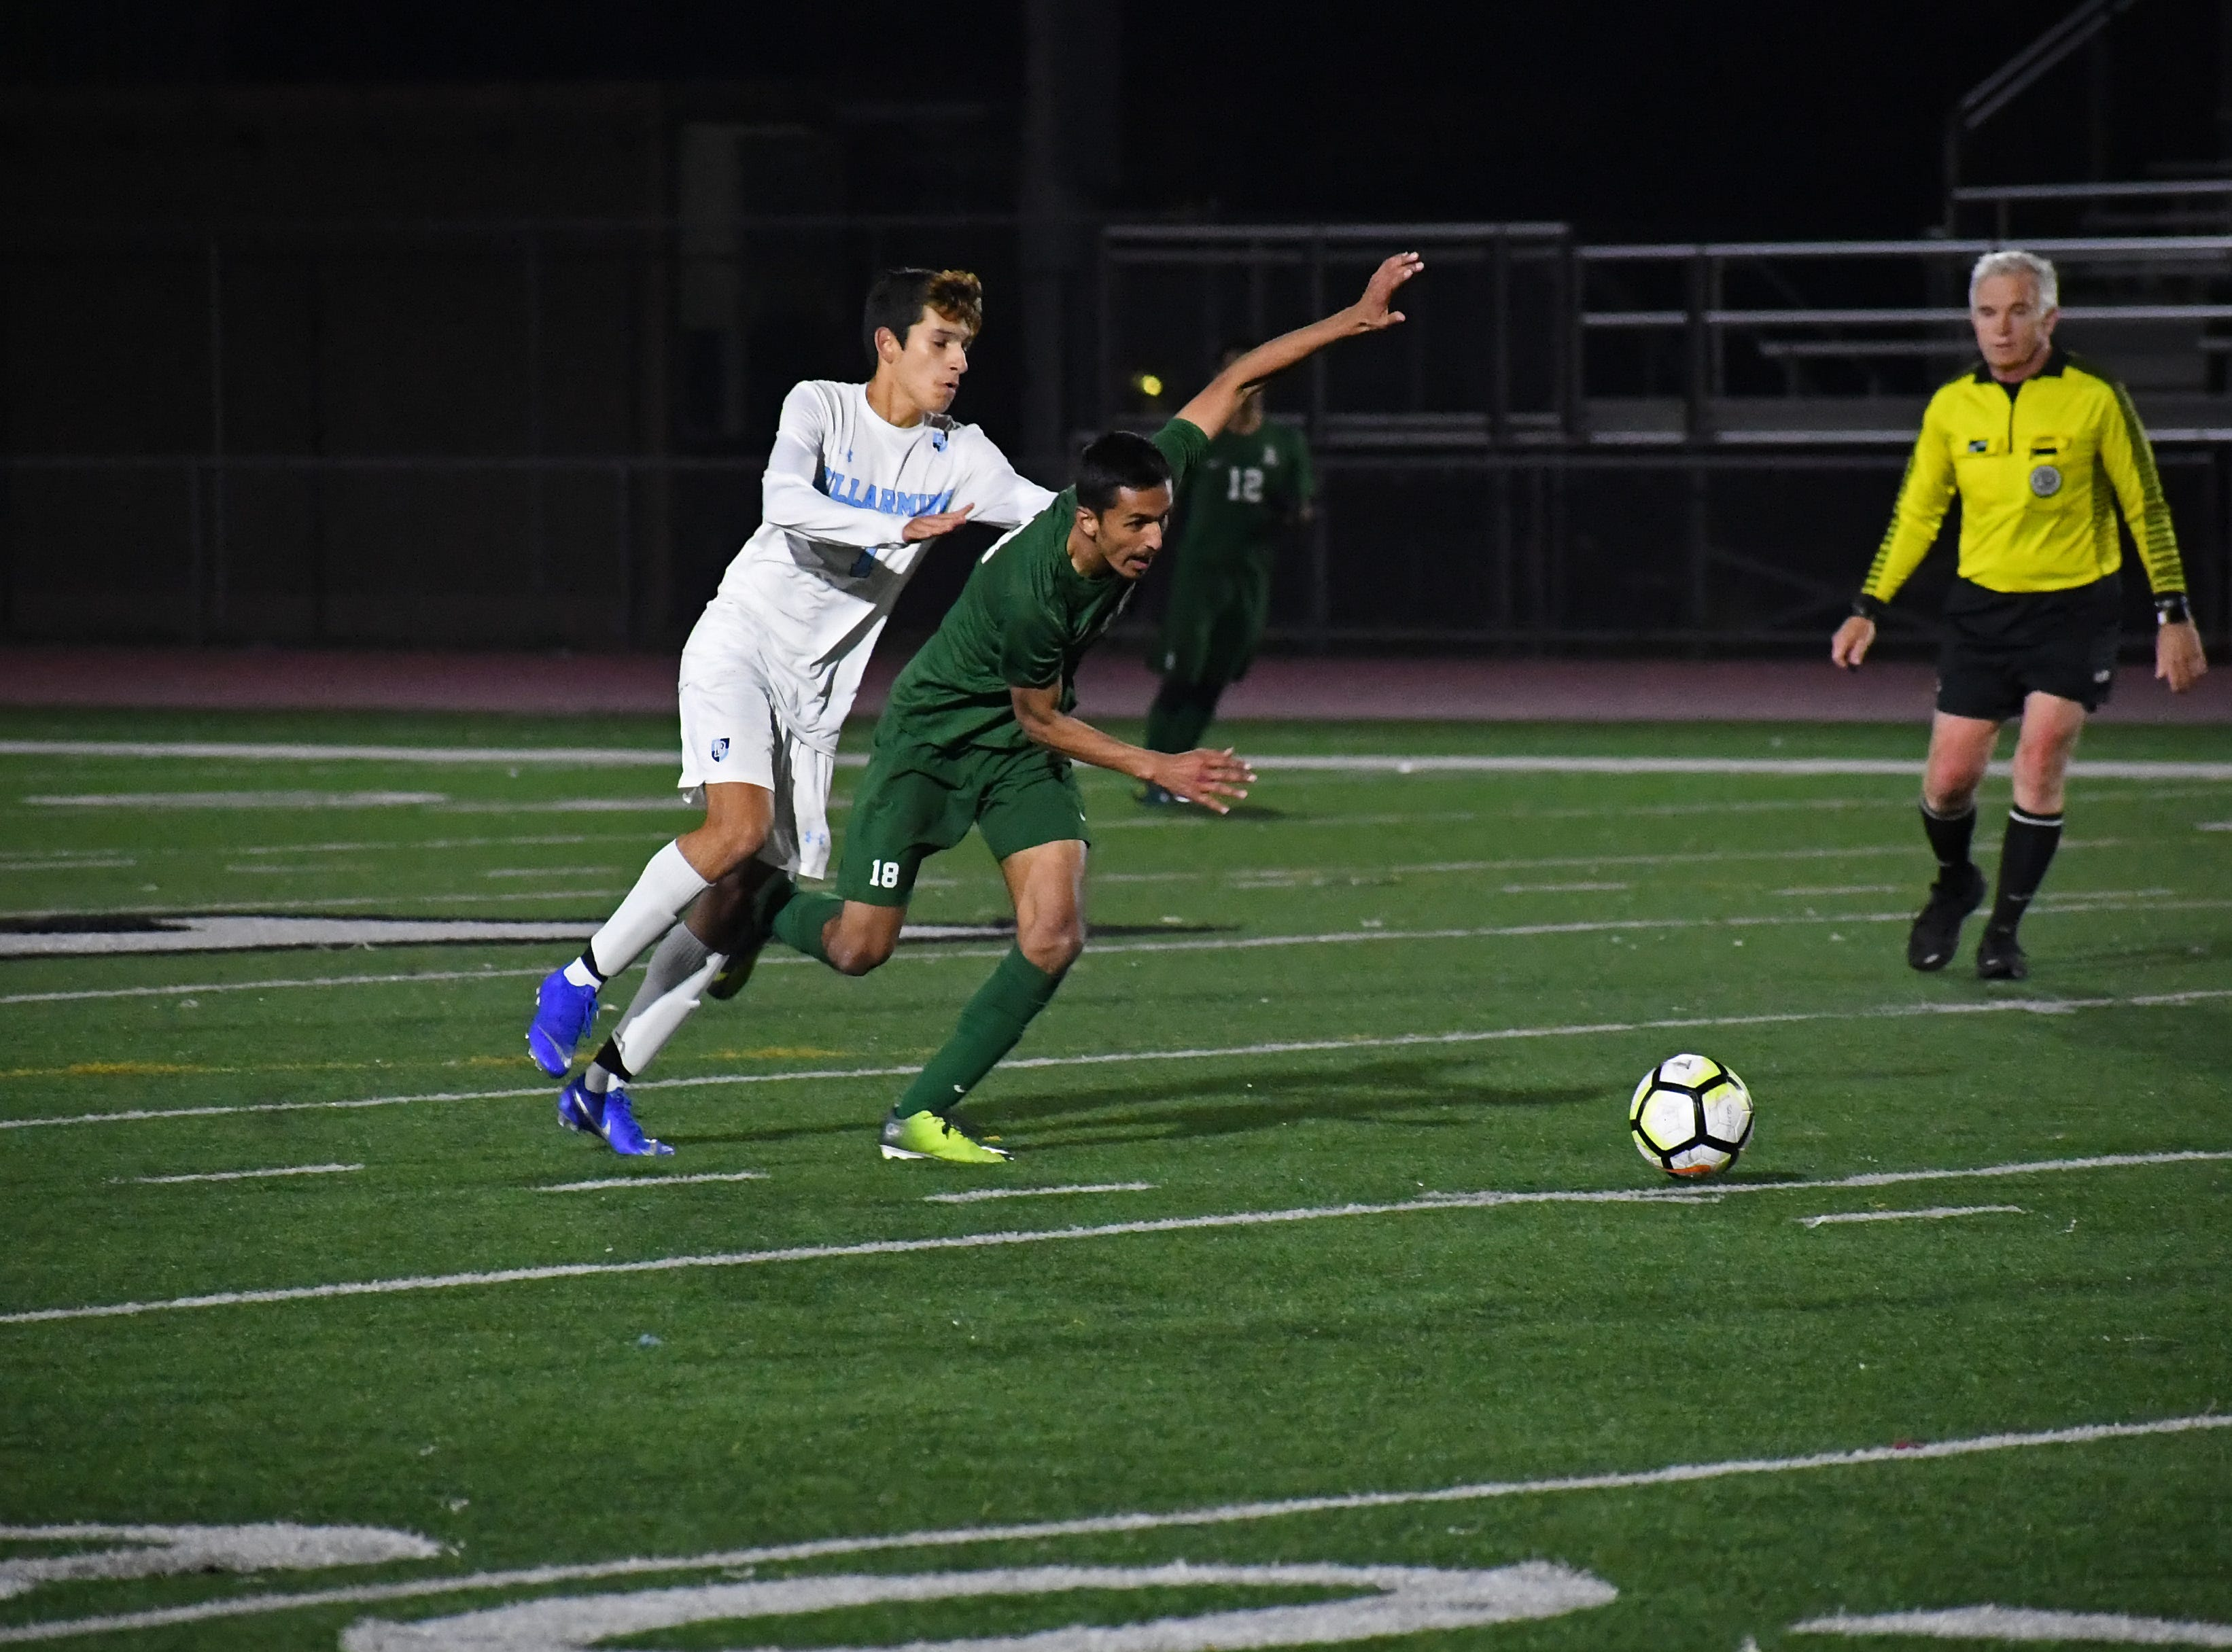 Forward Adiel Kuri-Cubillo (18) attempts to maintain his footing while sprinting towards the Bellarmine goal.